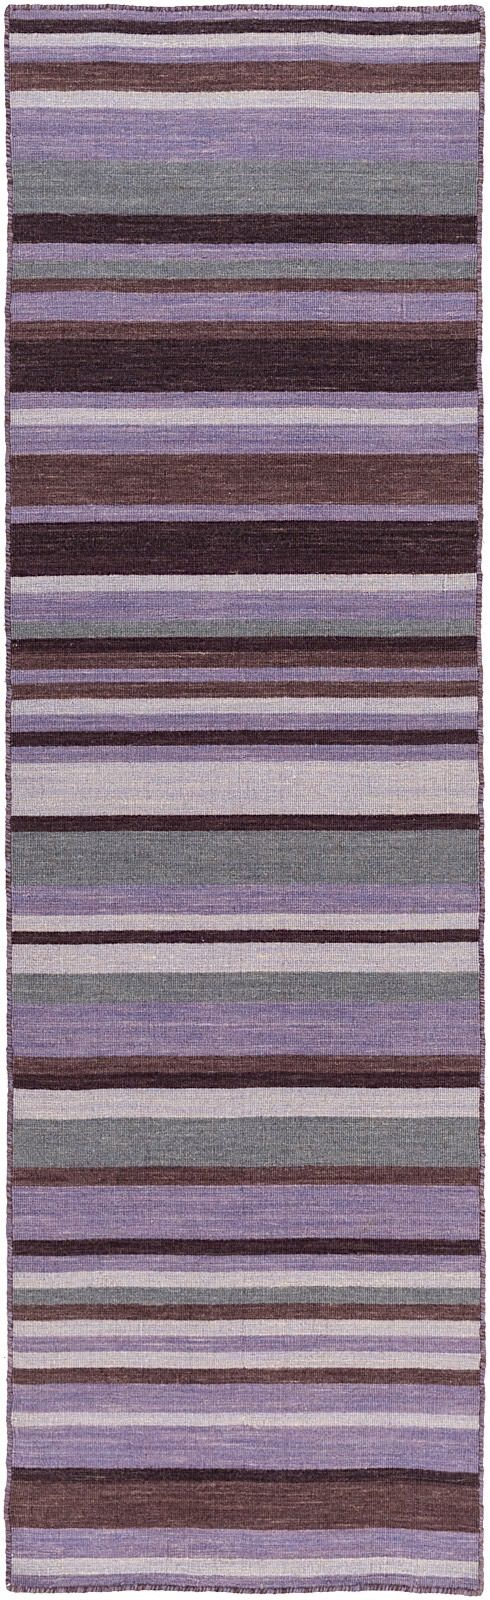 surya calvin solid/striped area rug collection